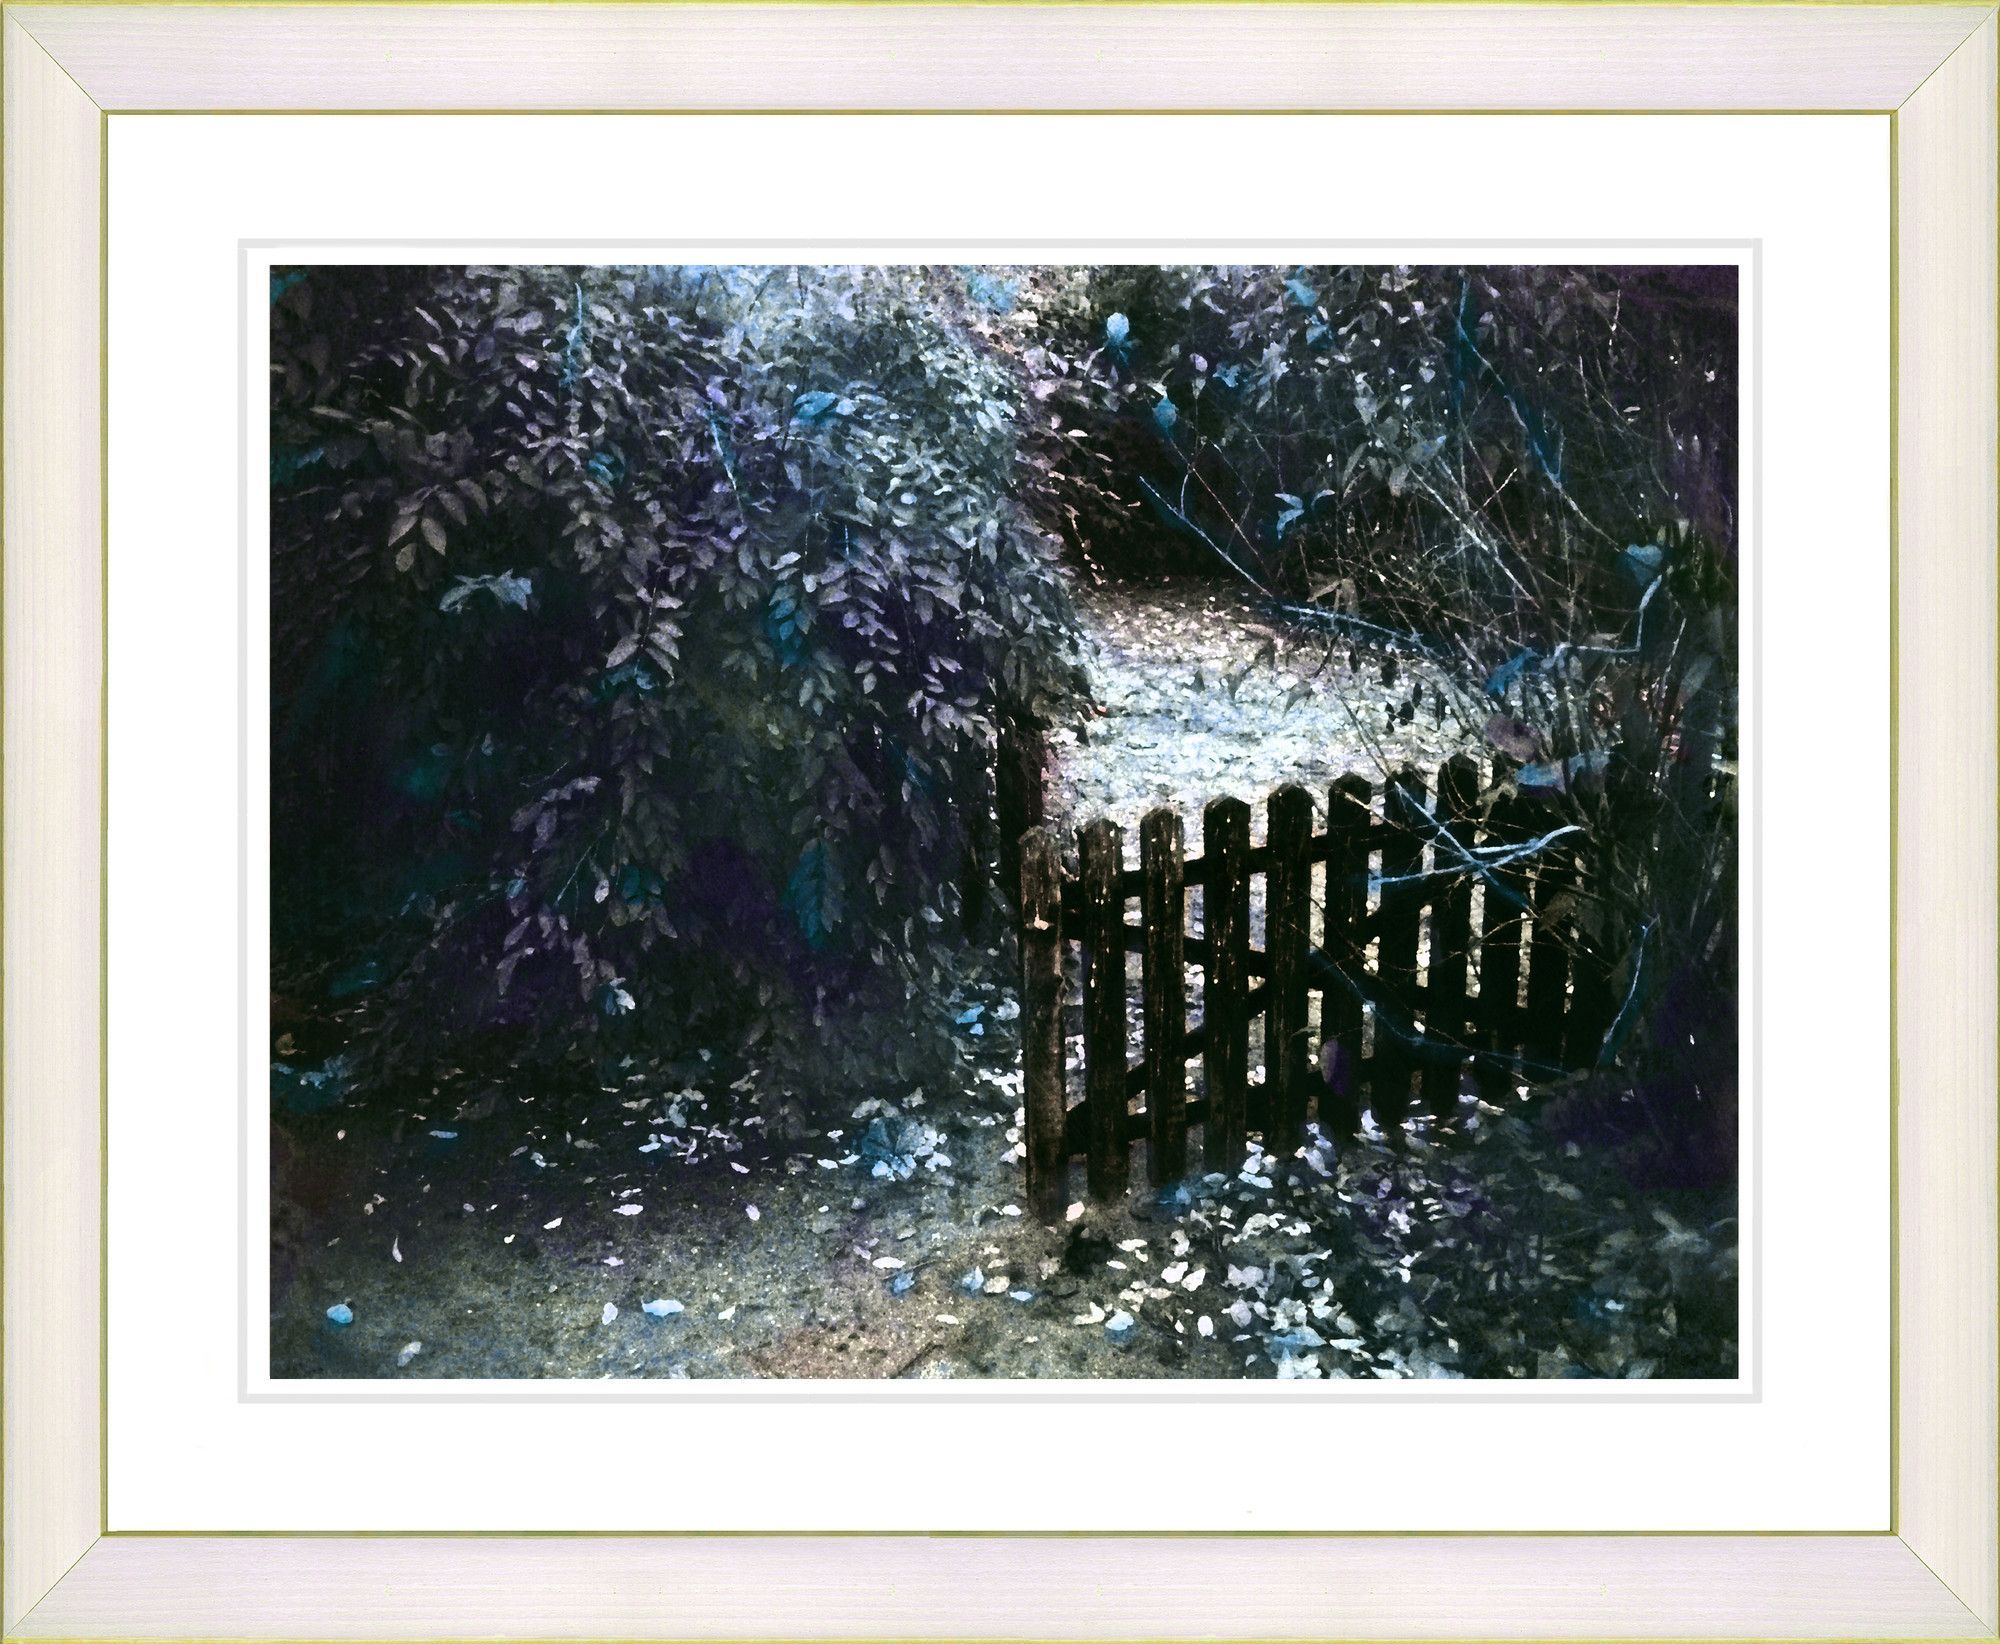 Cape Cod Garden - Dusk by Mia Singer Framed Fine Art Giclee Photographic Print